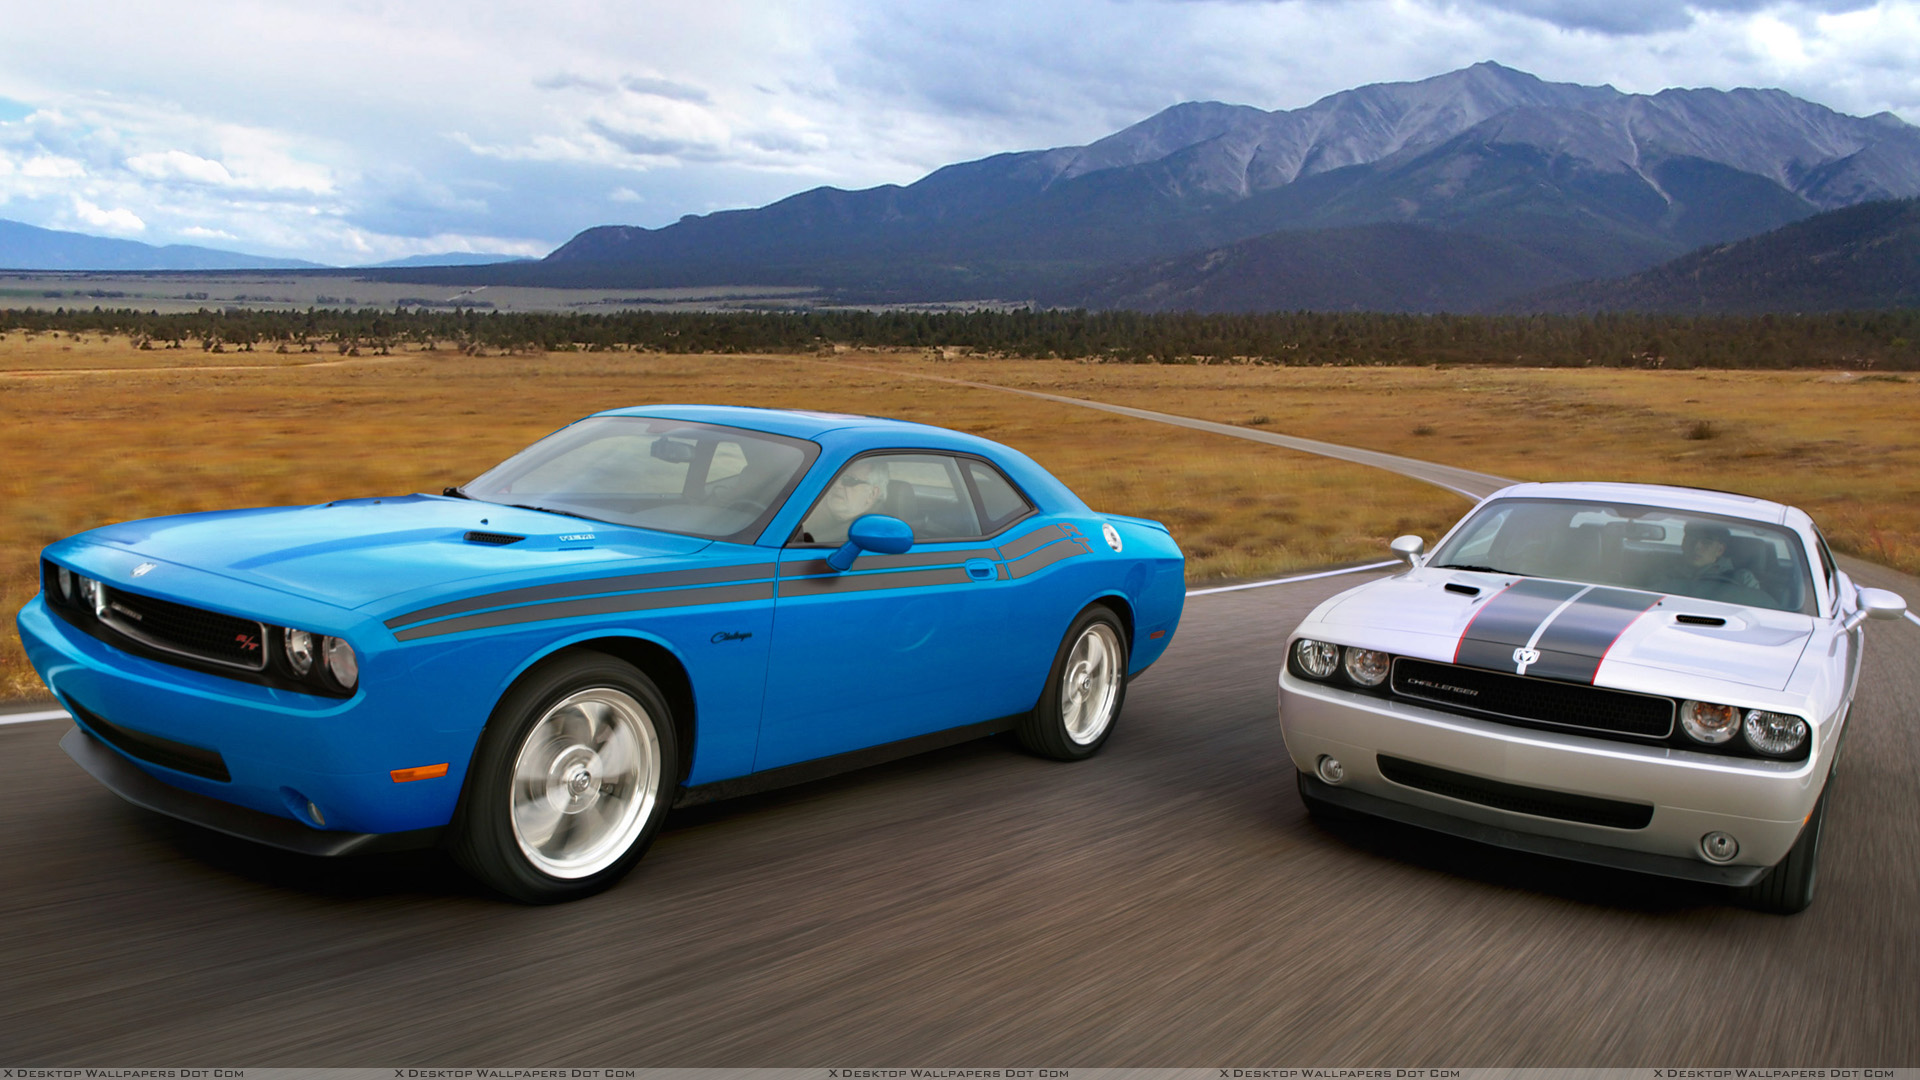 2009%20Dodge%20Challenger%20RT%20Classic%20In%20B5%20Blue%20Left%20With%20Dodge%20Challenger%20Se%20Rallye%20In%20Silver%20Right